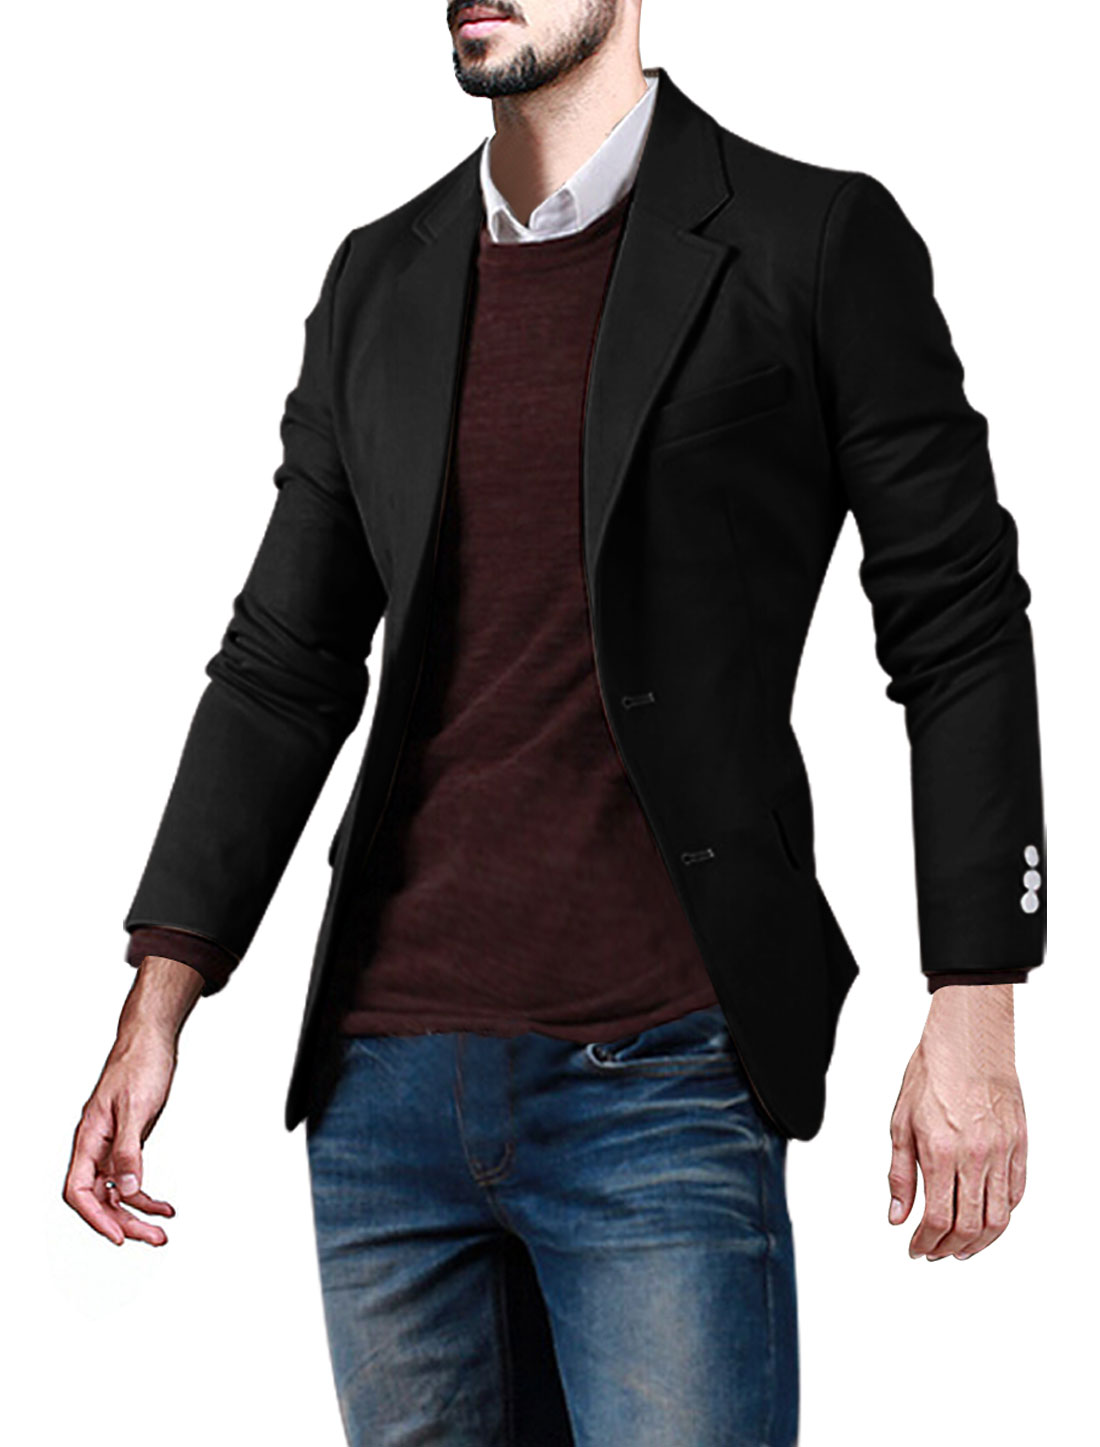 Men Notched Lapel Three Pockets Button Closed Slim Fit Blazer Black M